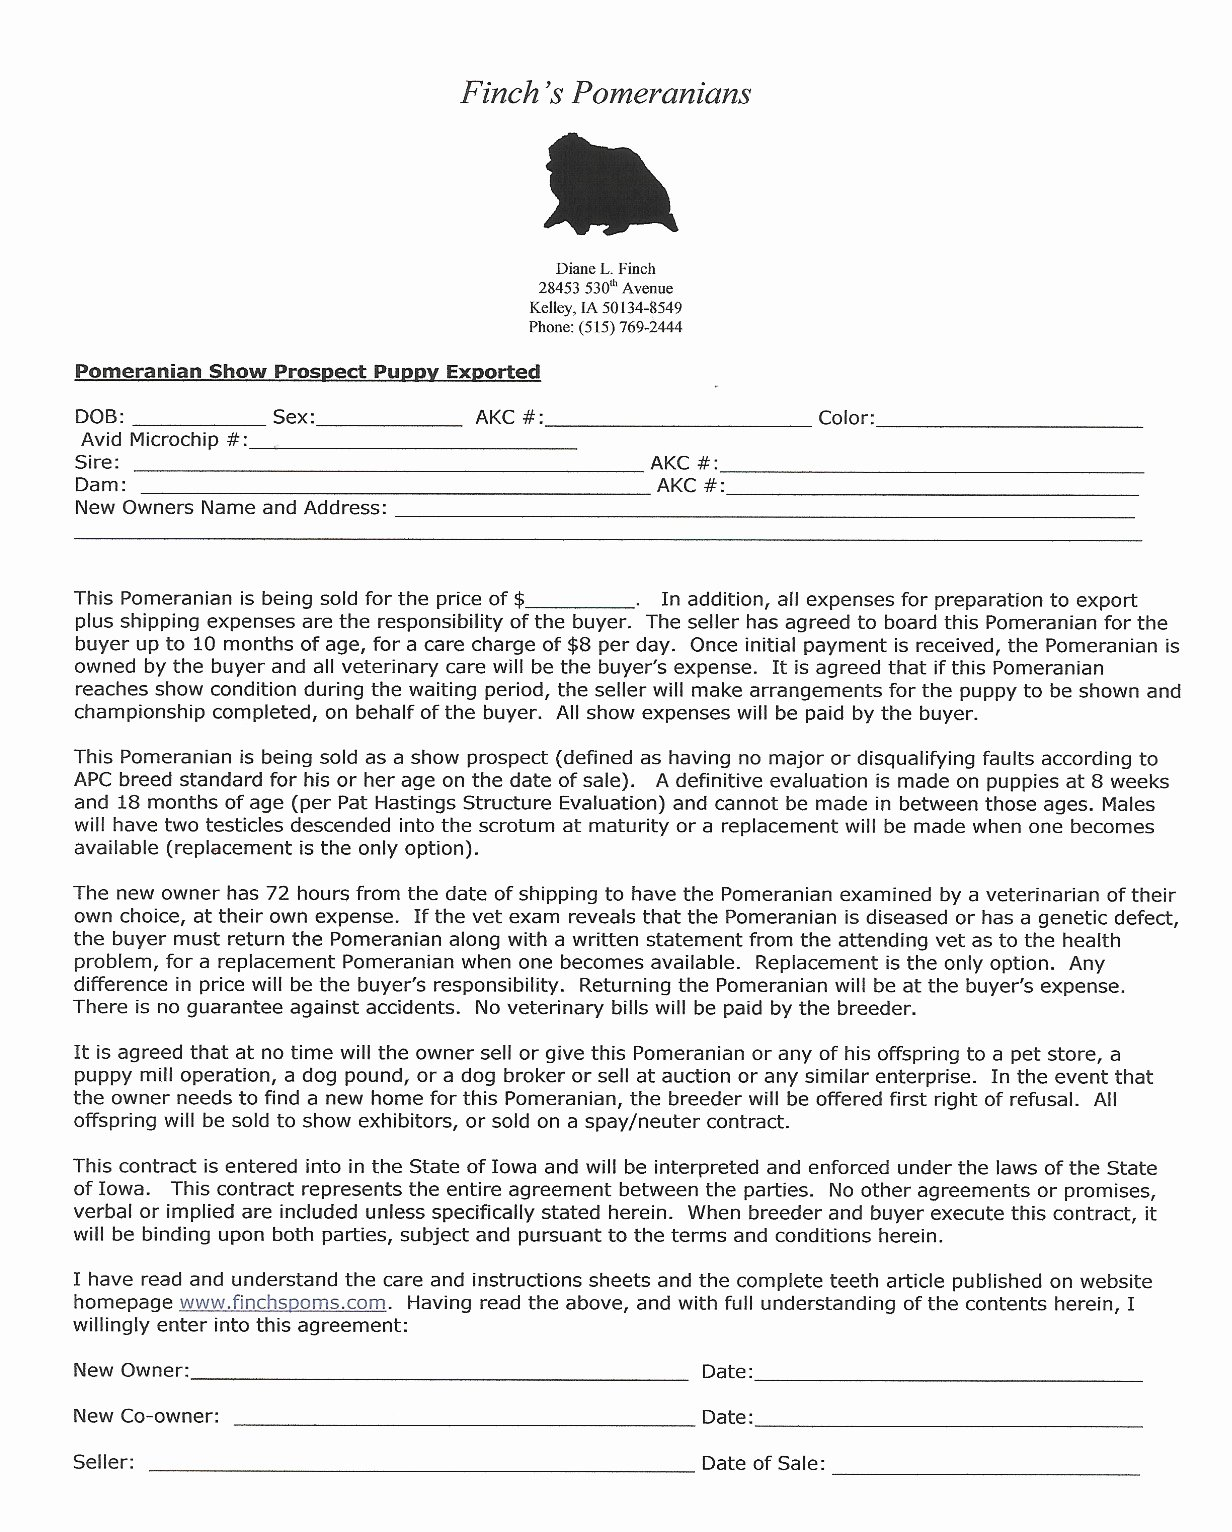 Puppy Sales Contract Template Elegant Breeding Pomeranians